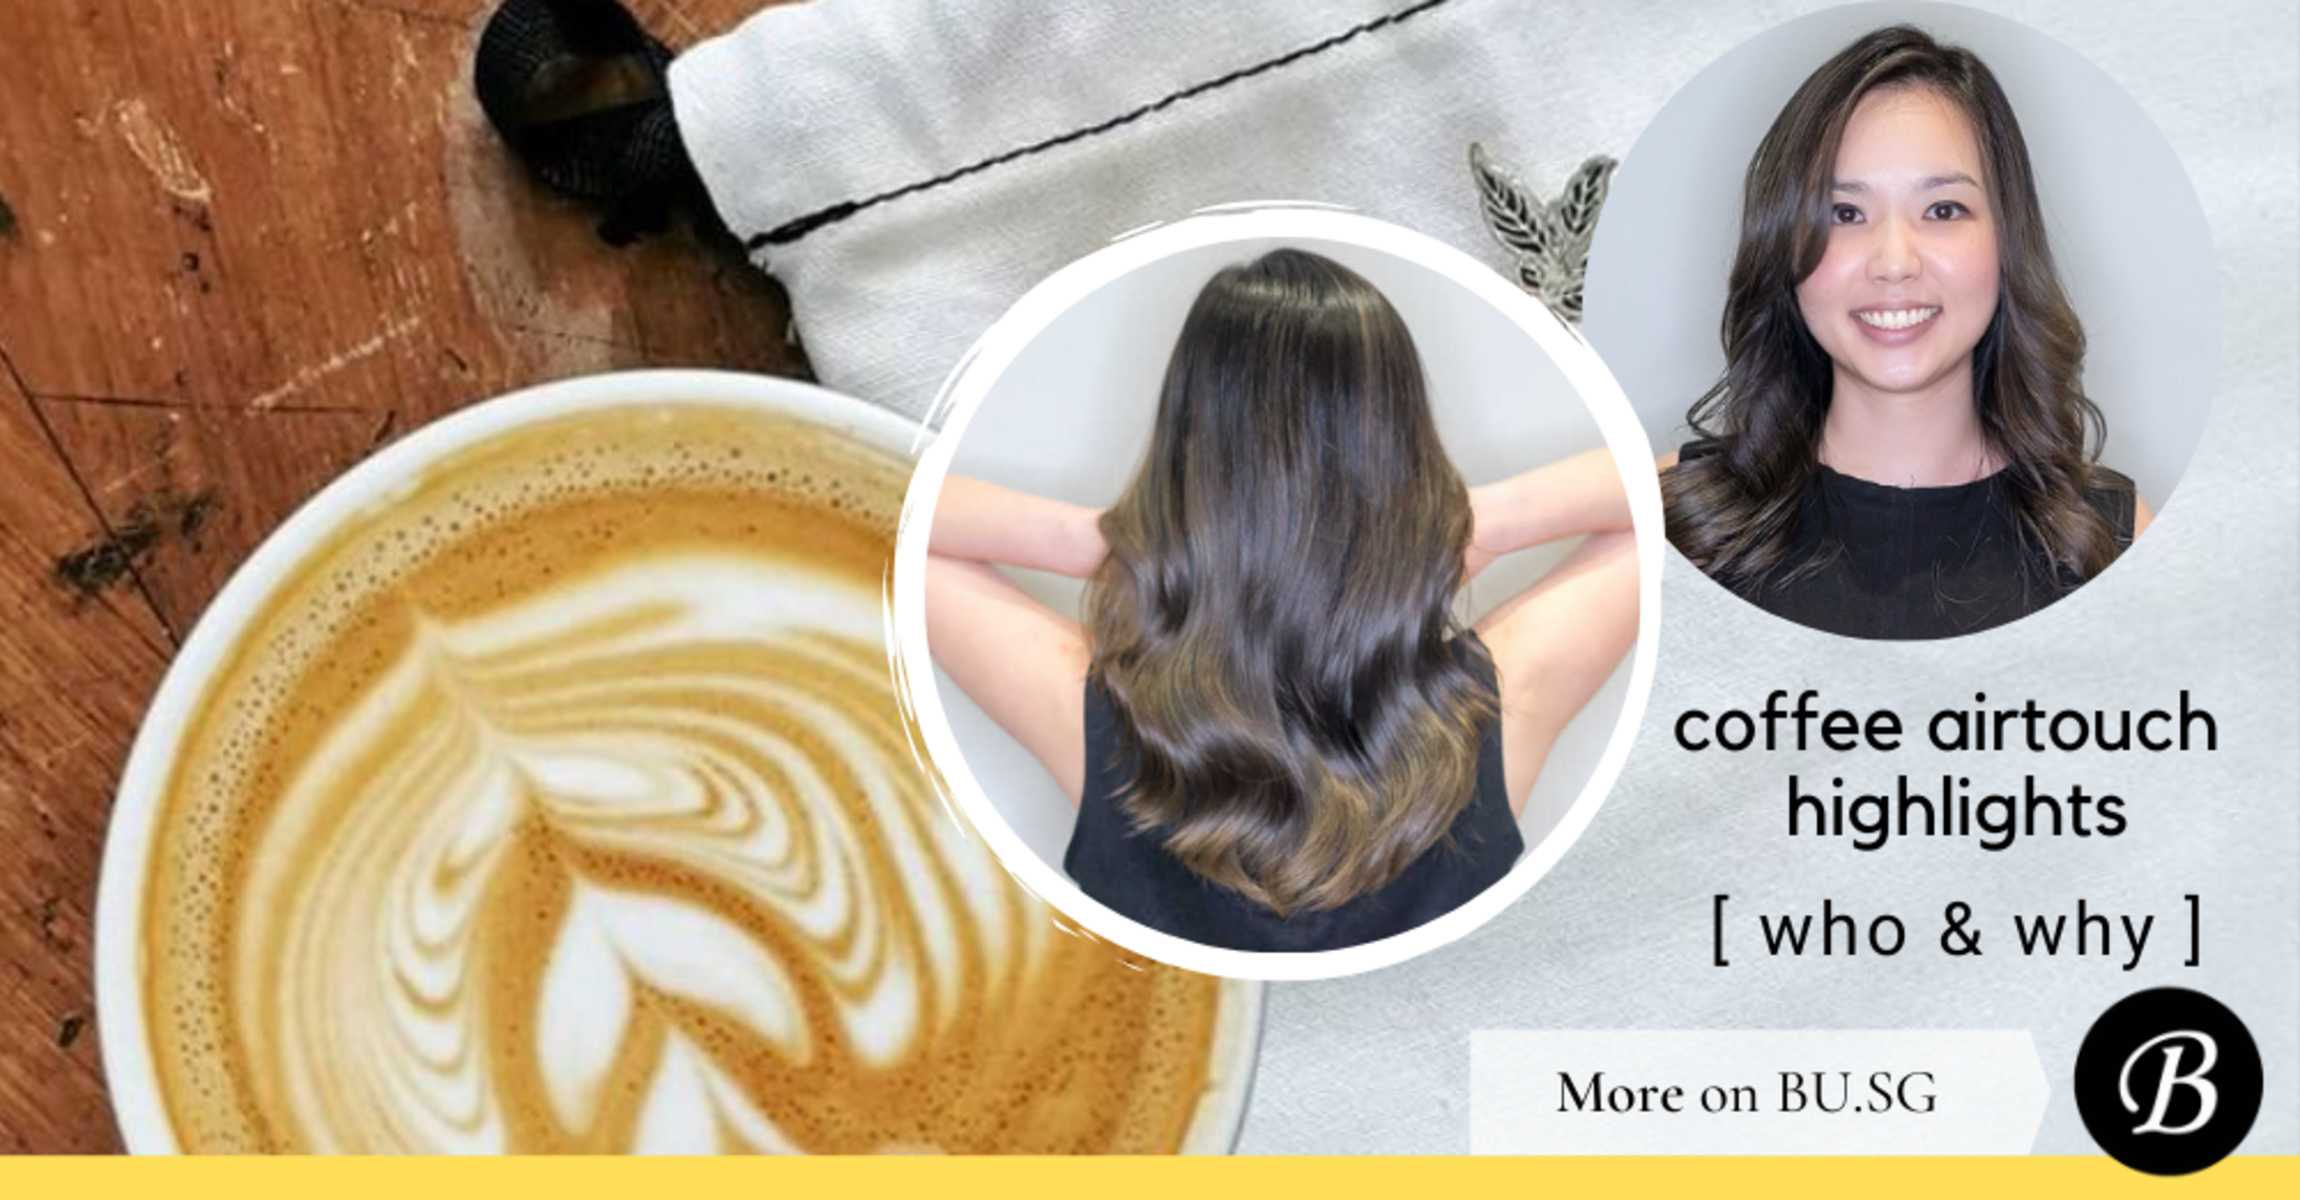 Coffee Airtouch Highlights is the Perfect Autumn Hair Trend to Celebrate 2020